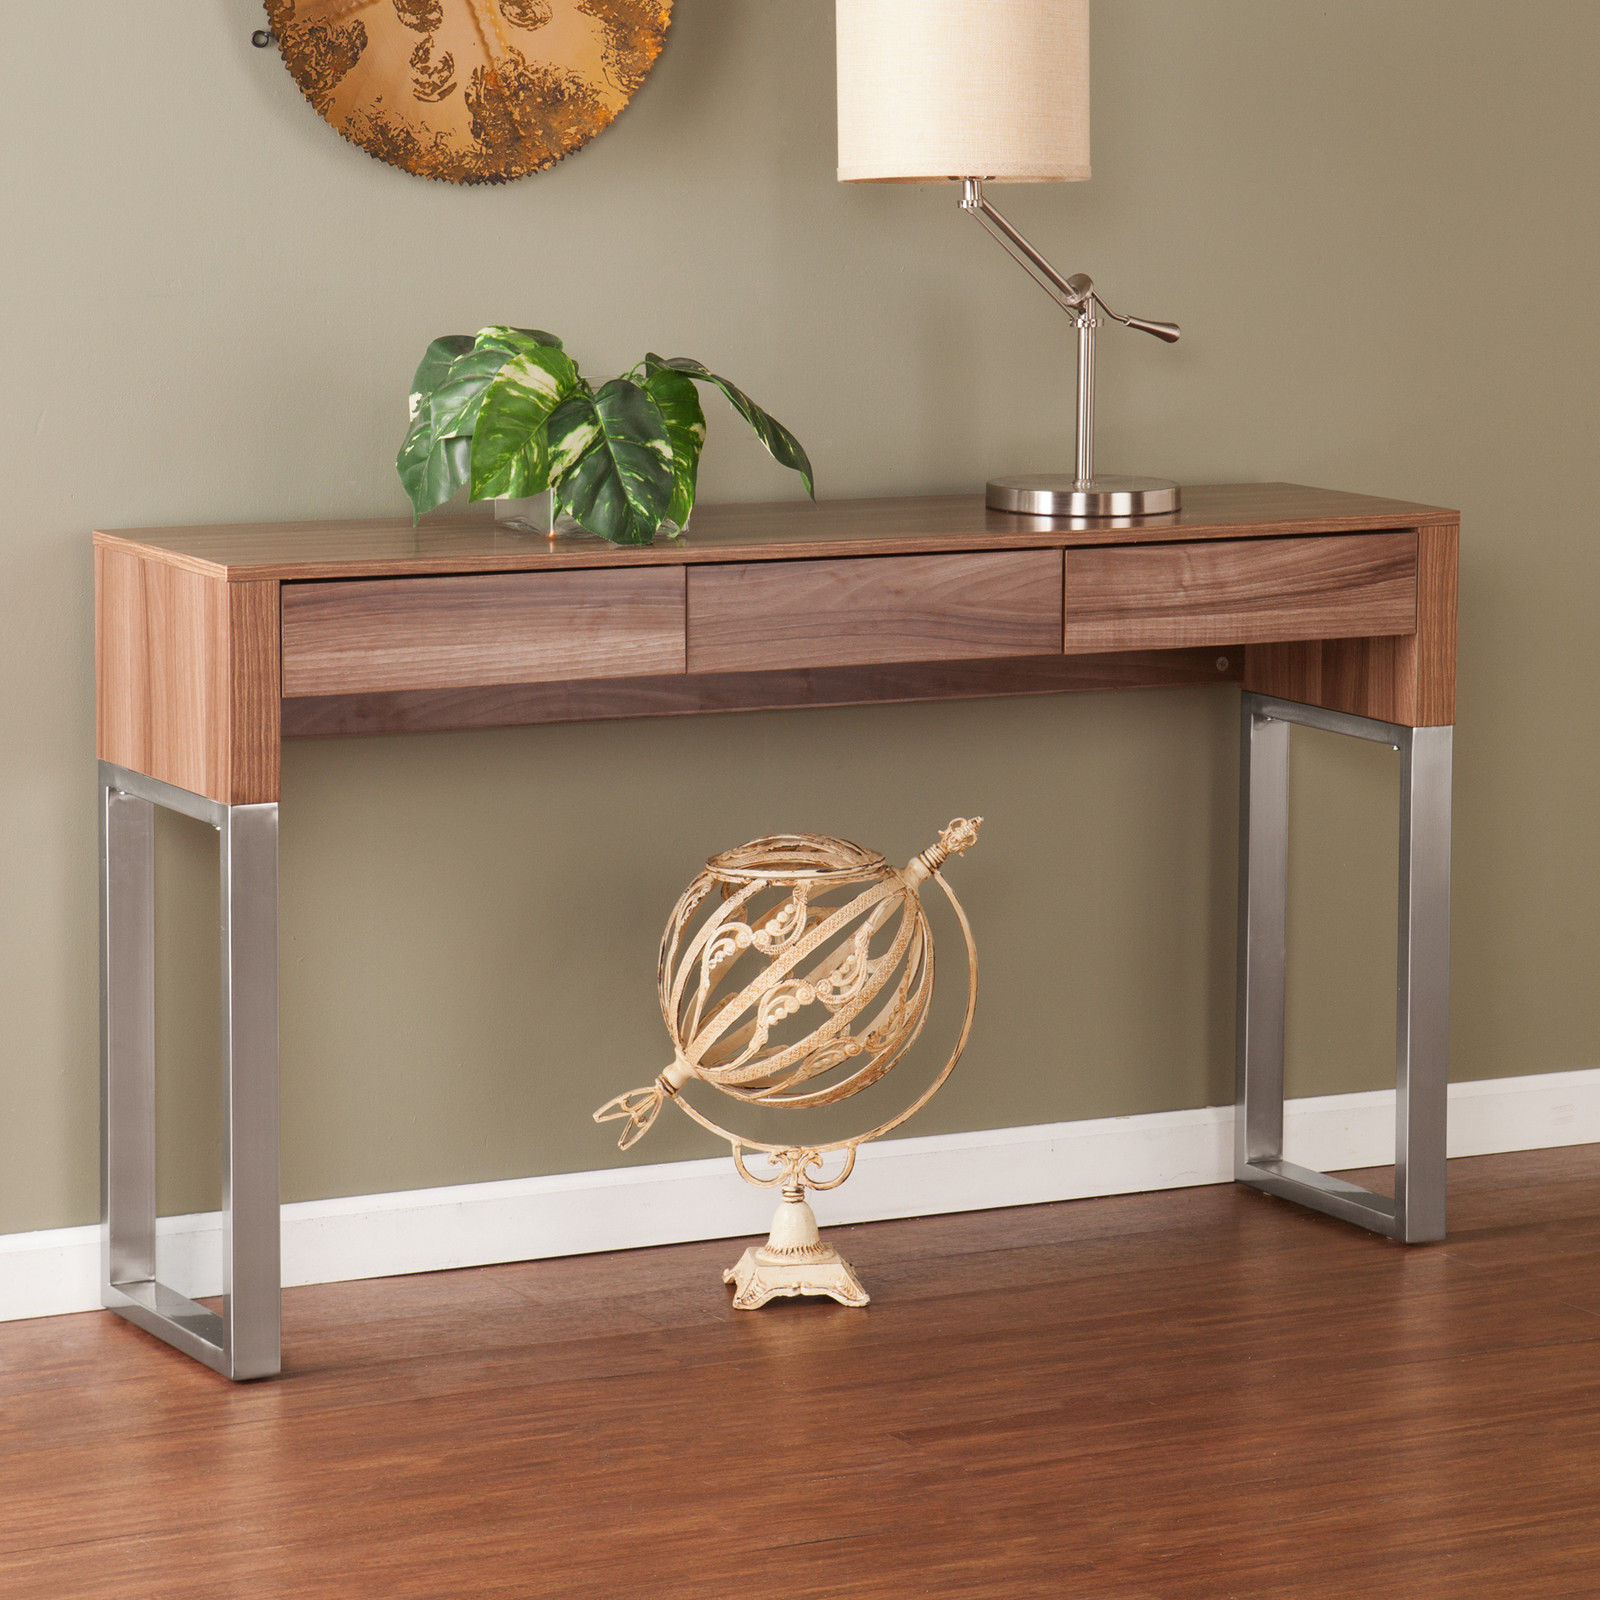 console table Spice Up Your Console Table Decor With Houseplants Spice Up Your Console Table Decor With Houseplants 6 1